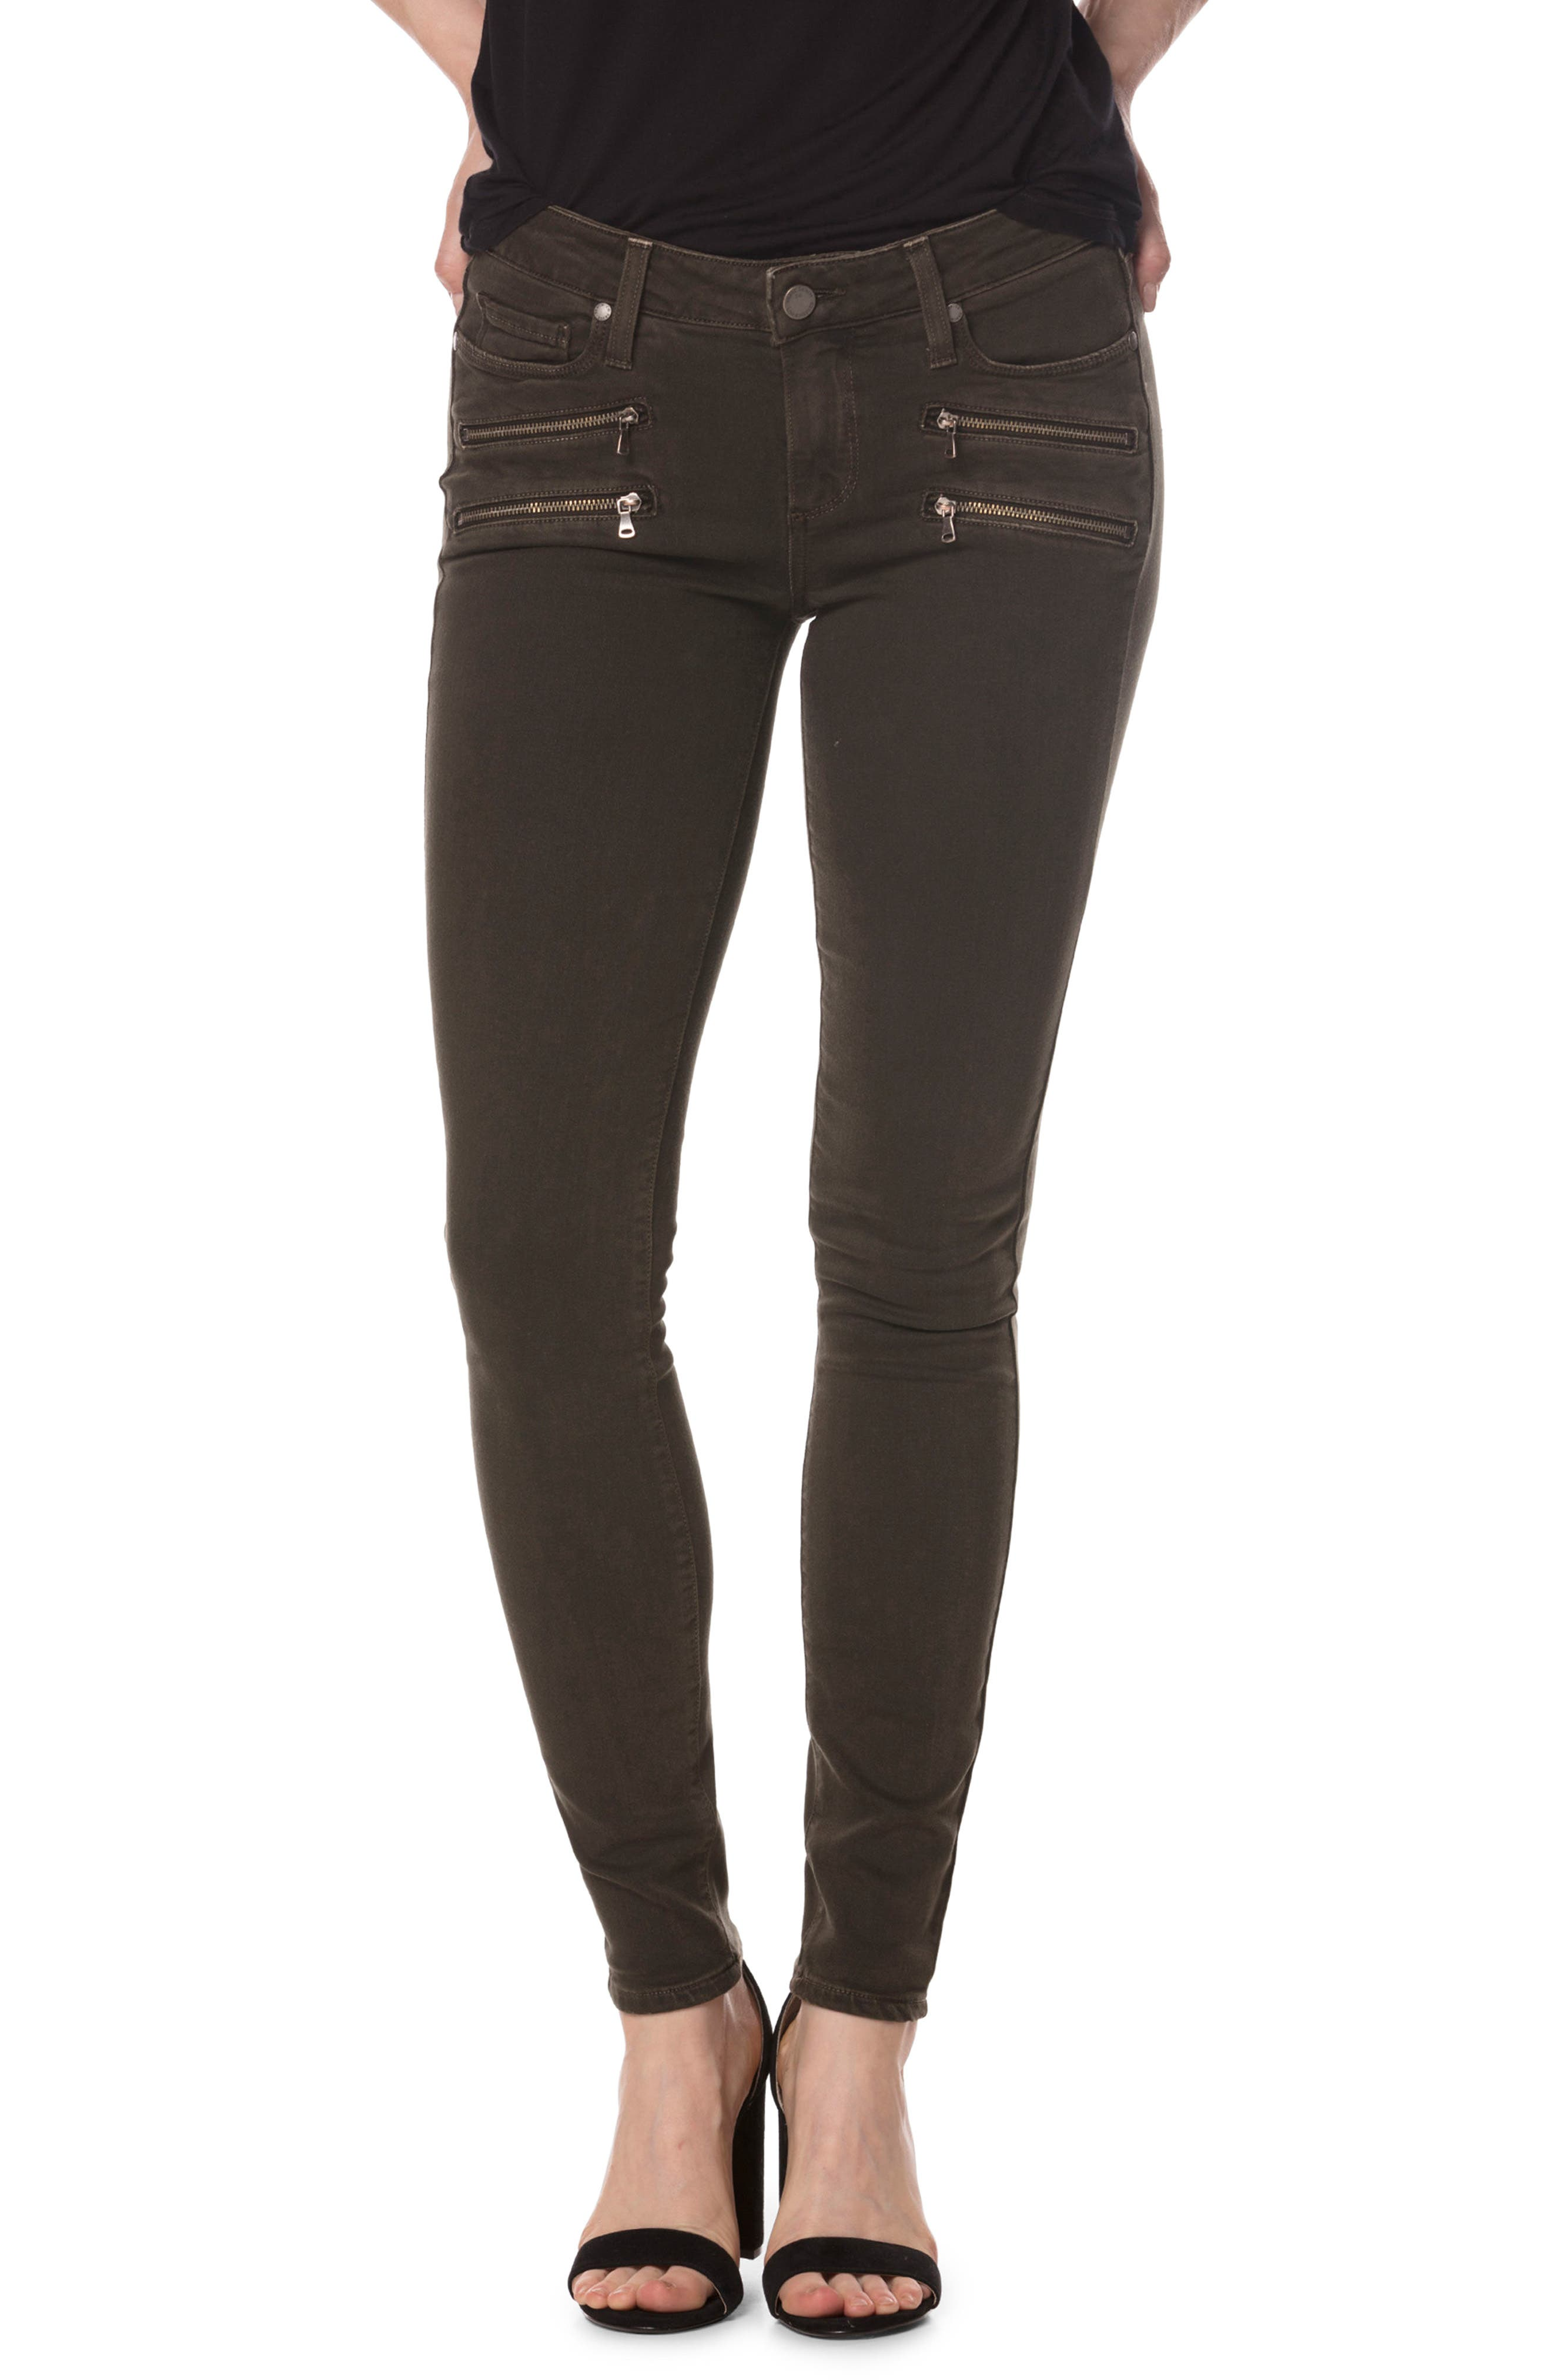 PAIGE Transcend - Edgemont Ankle Ultra Skinny Jeans